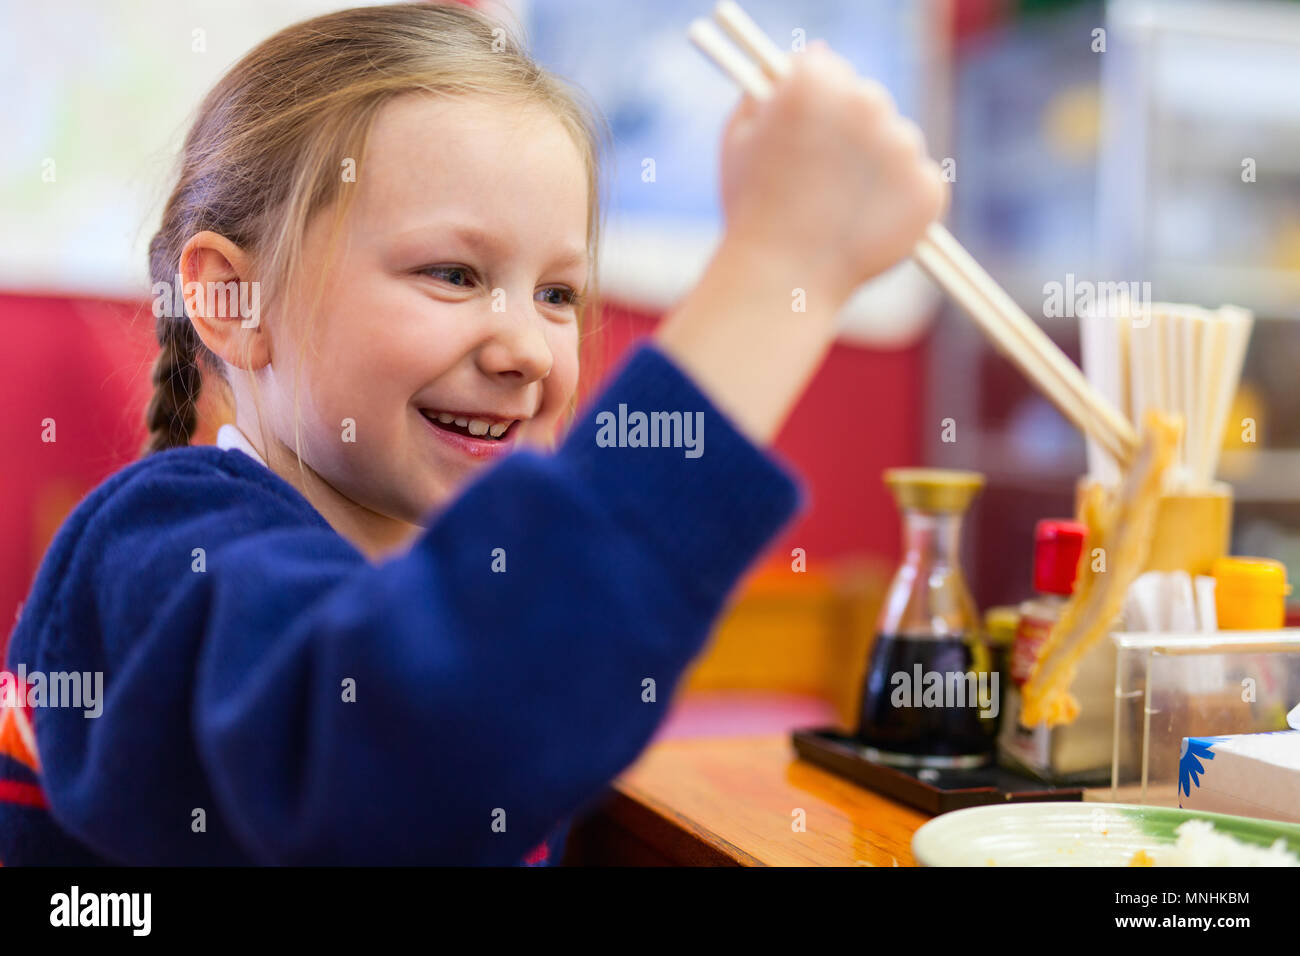 Portrait of adorable little girl playing with chopsticks at Japanese  restaurant - Stock Image